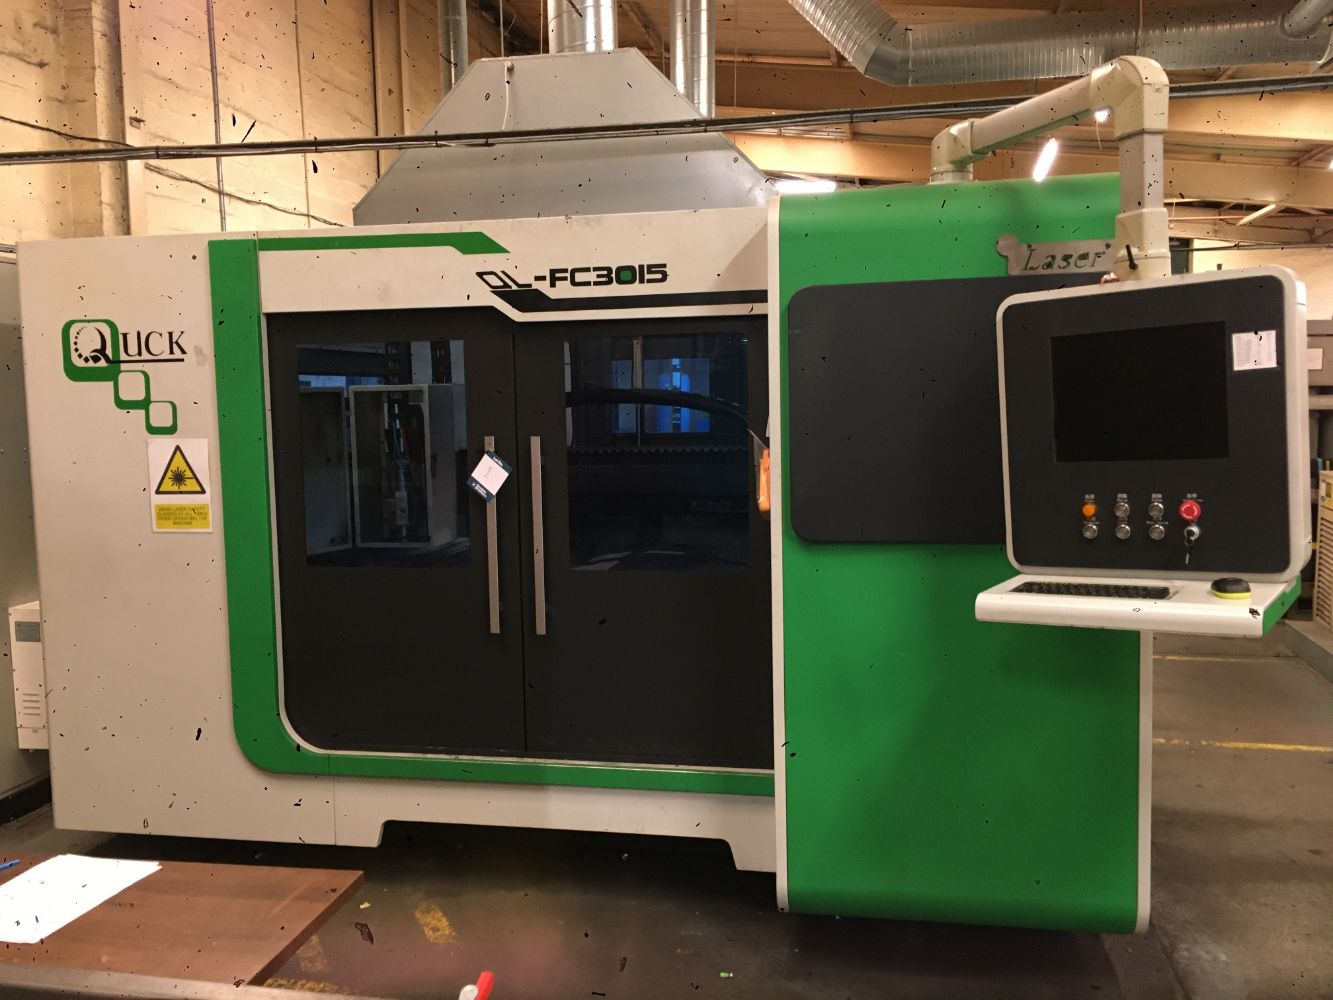 CNC & CONVENTIONAL MACHINE TOOLS; WOODWORKING & UPHOLSTERY EQUIPMENT; PRESSES & LASER CUTTERS; WELDING & WAREHOUSE EQUIPMENT ETC.